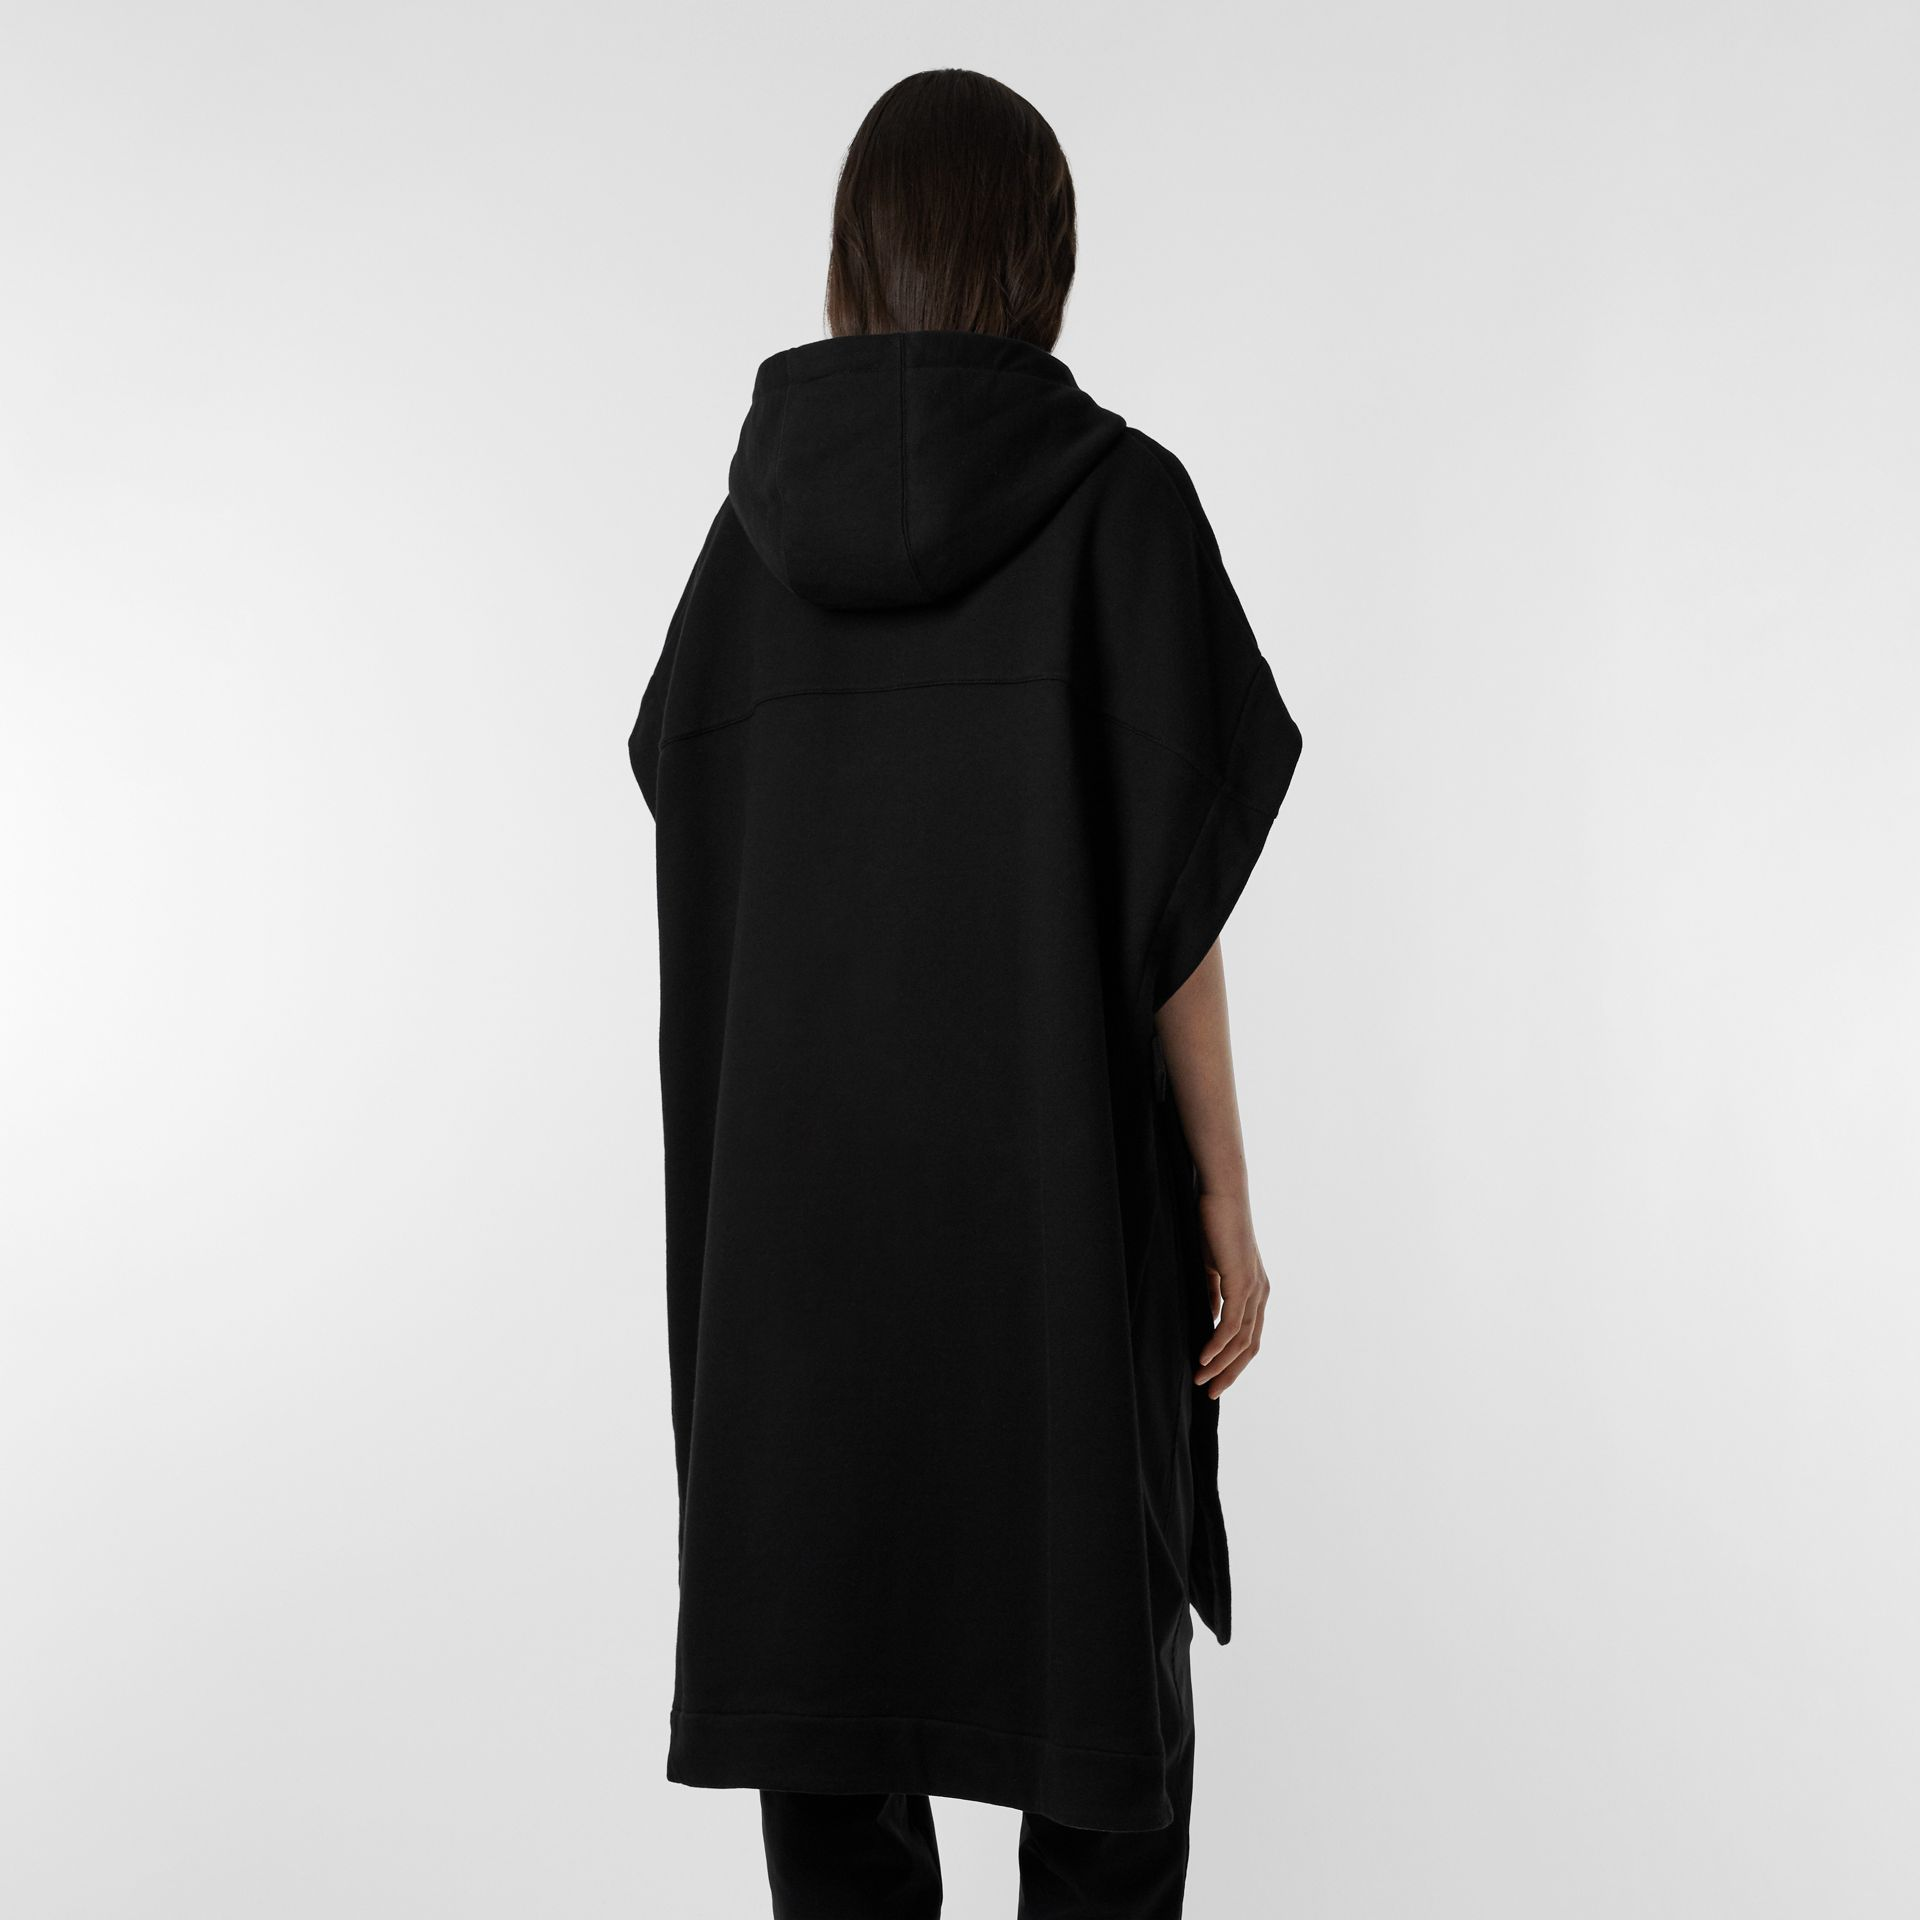 Monogram Motif Cotton Oversized Hooded Poncho in Black | Burberry - gallery image 10